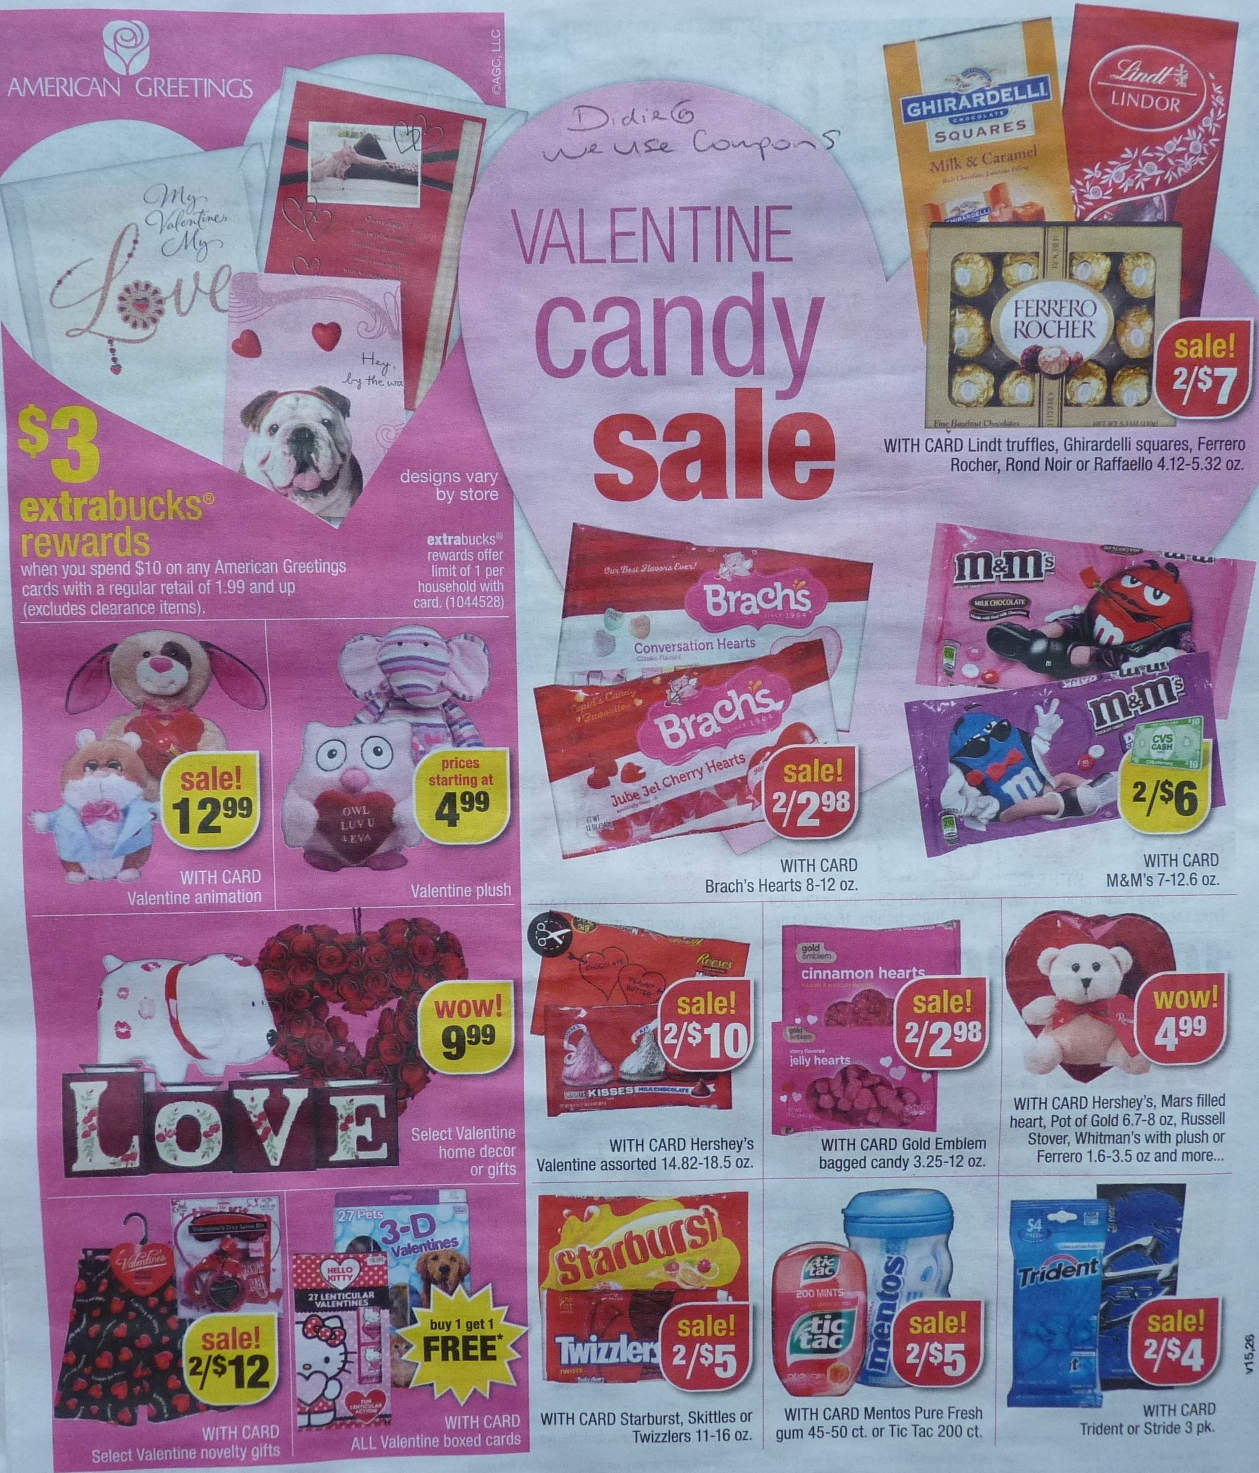 Simply cvs cvs ad scan preview for the week of 1202013 you can see if there are any printable coupons youd like to print for items on sale at redplum smartsource coupon network or coupons kristyandbryce Choice Image